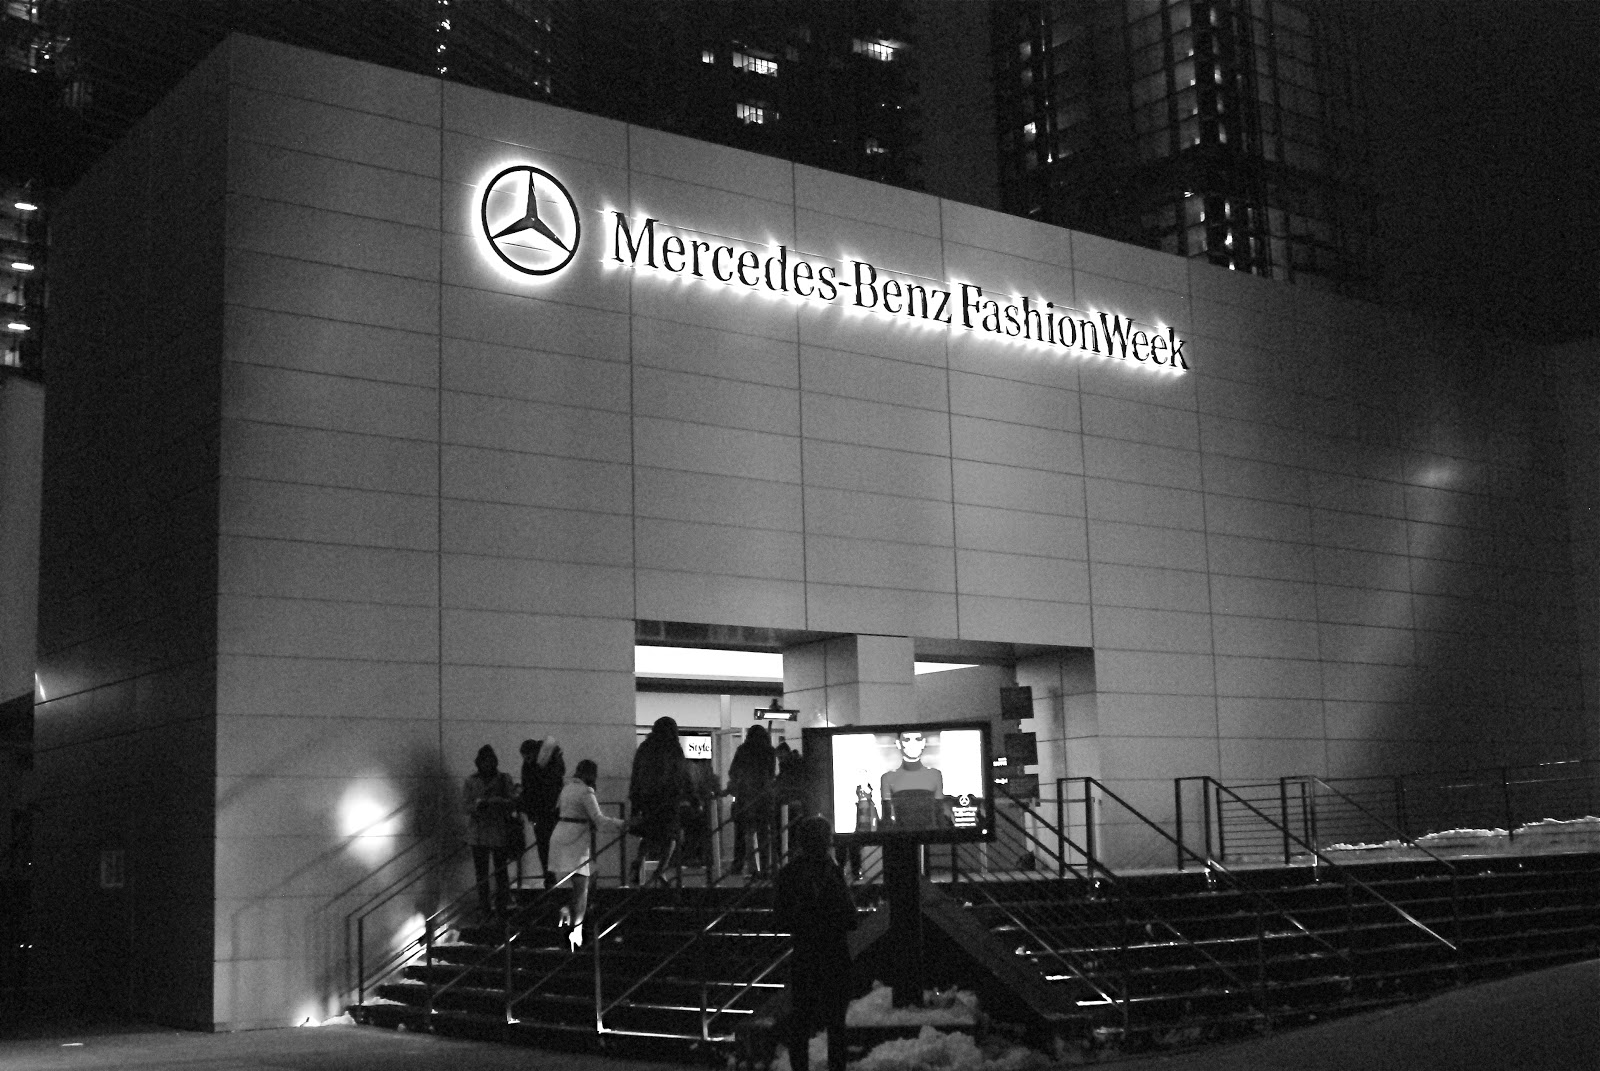 Mercedes benz fashion week in new york royale marketing for Mercedes benz nyc